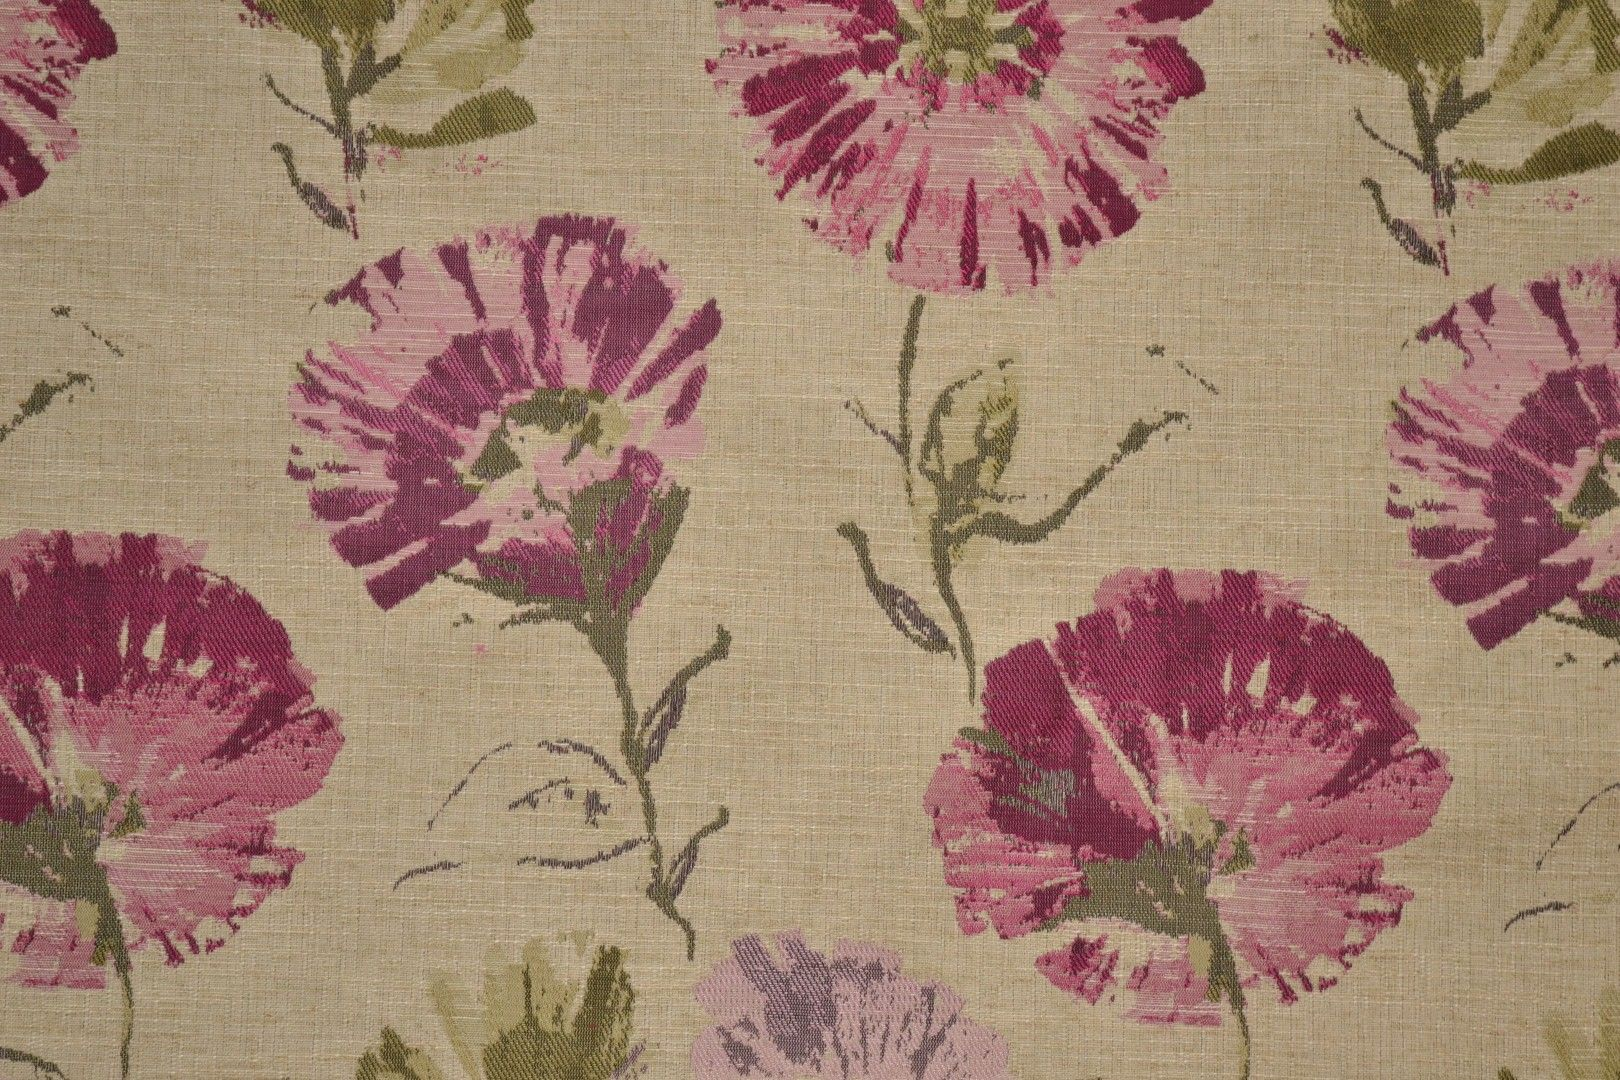 Woven Floral Fabric With Shades Of Fuschia Pink And Purple